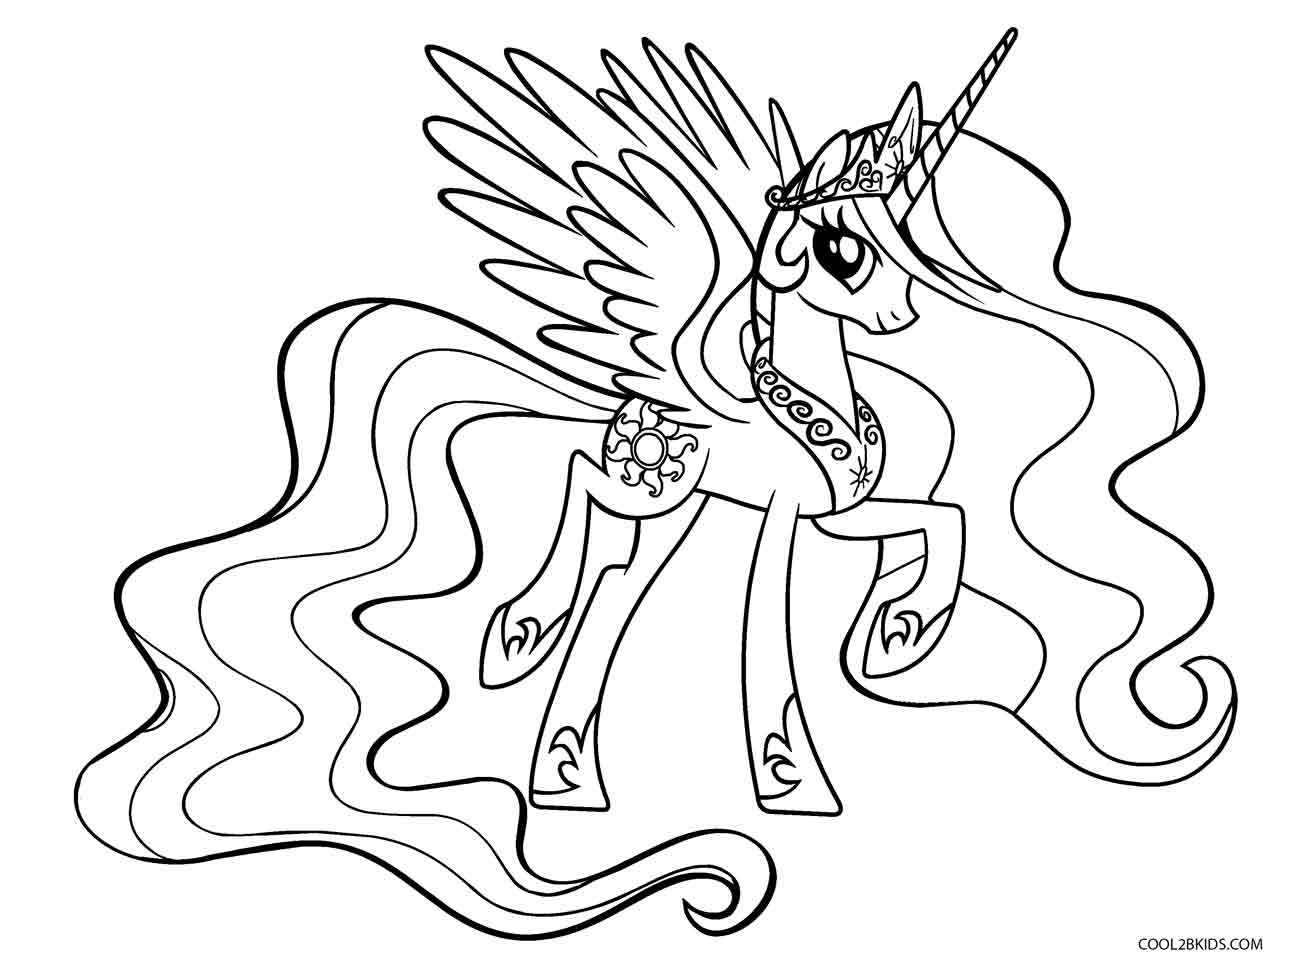 1300x971 Free Printable My Little Pony Coloring Pages For Kids